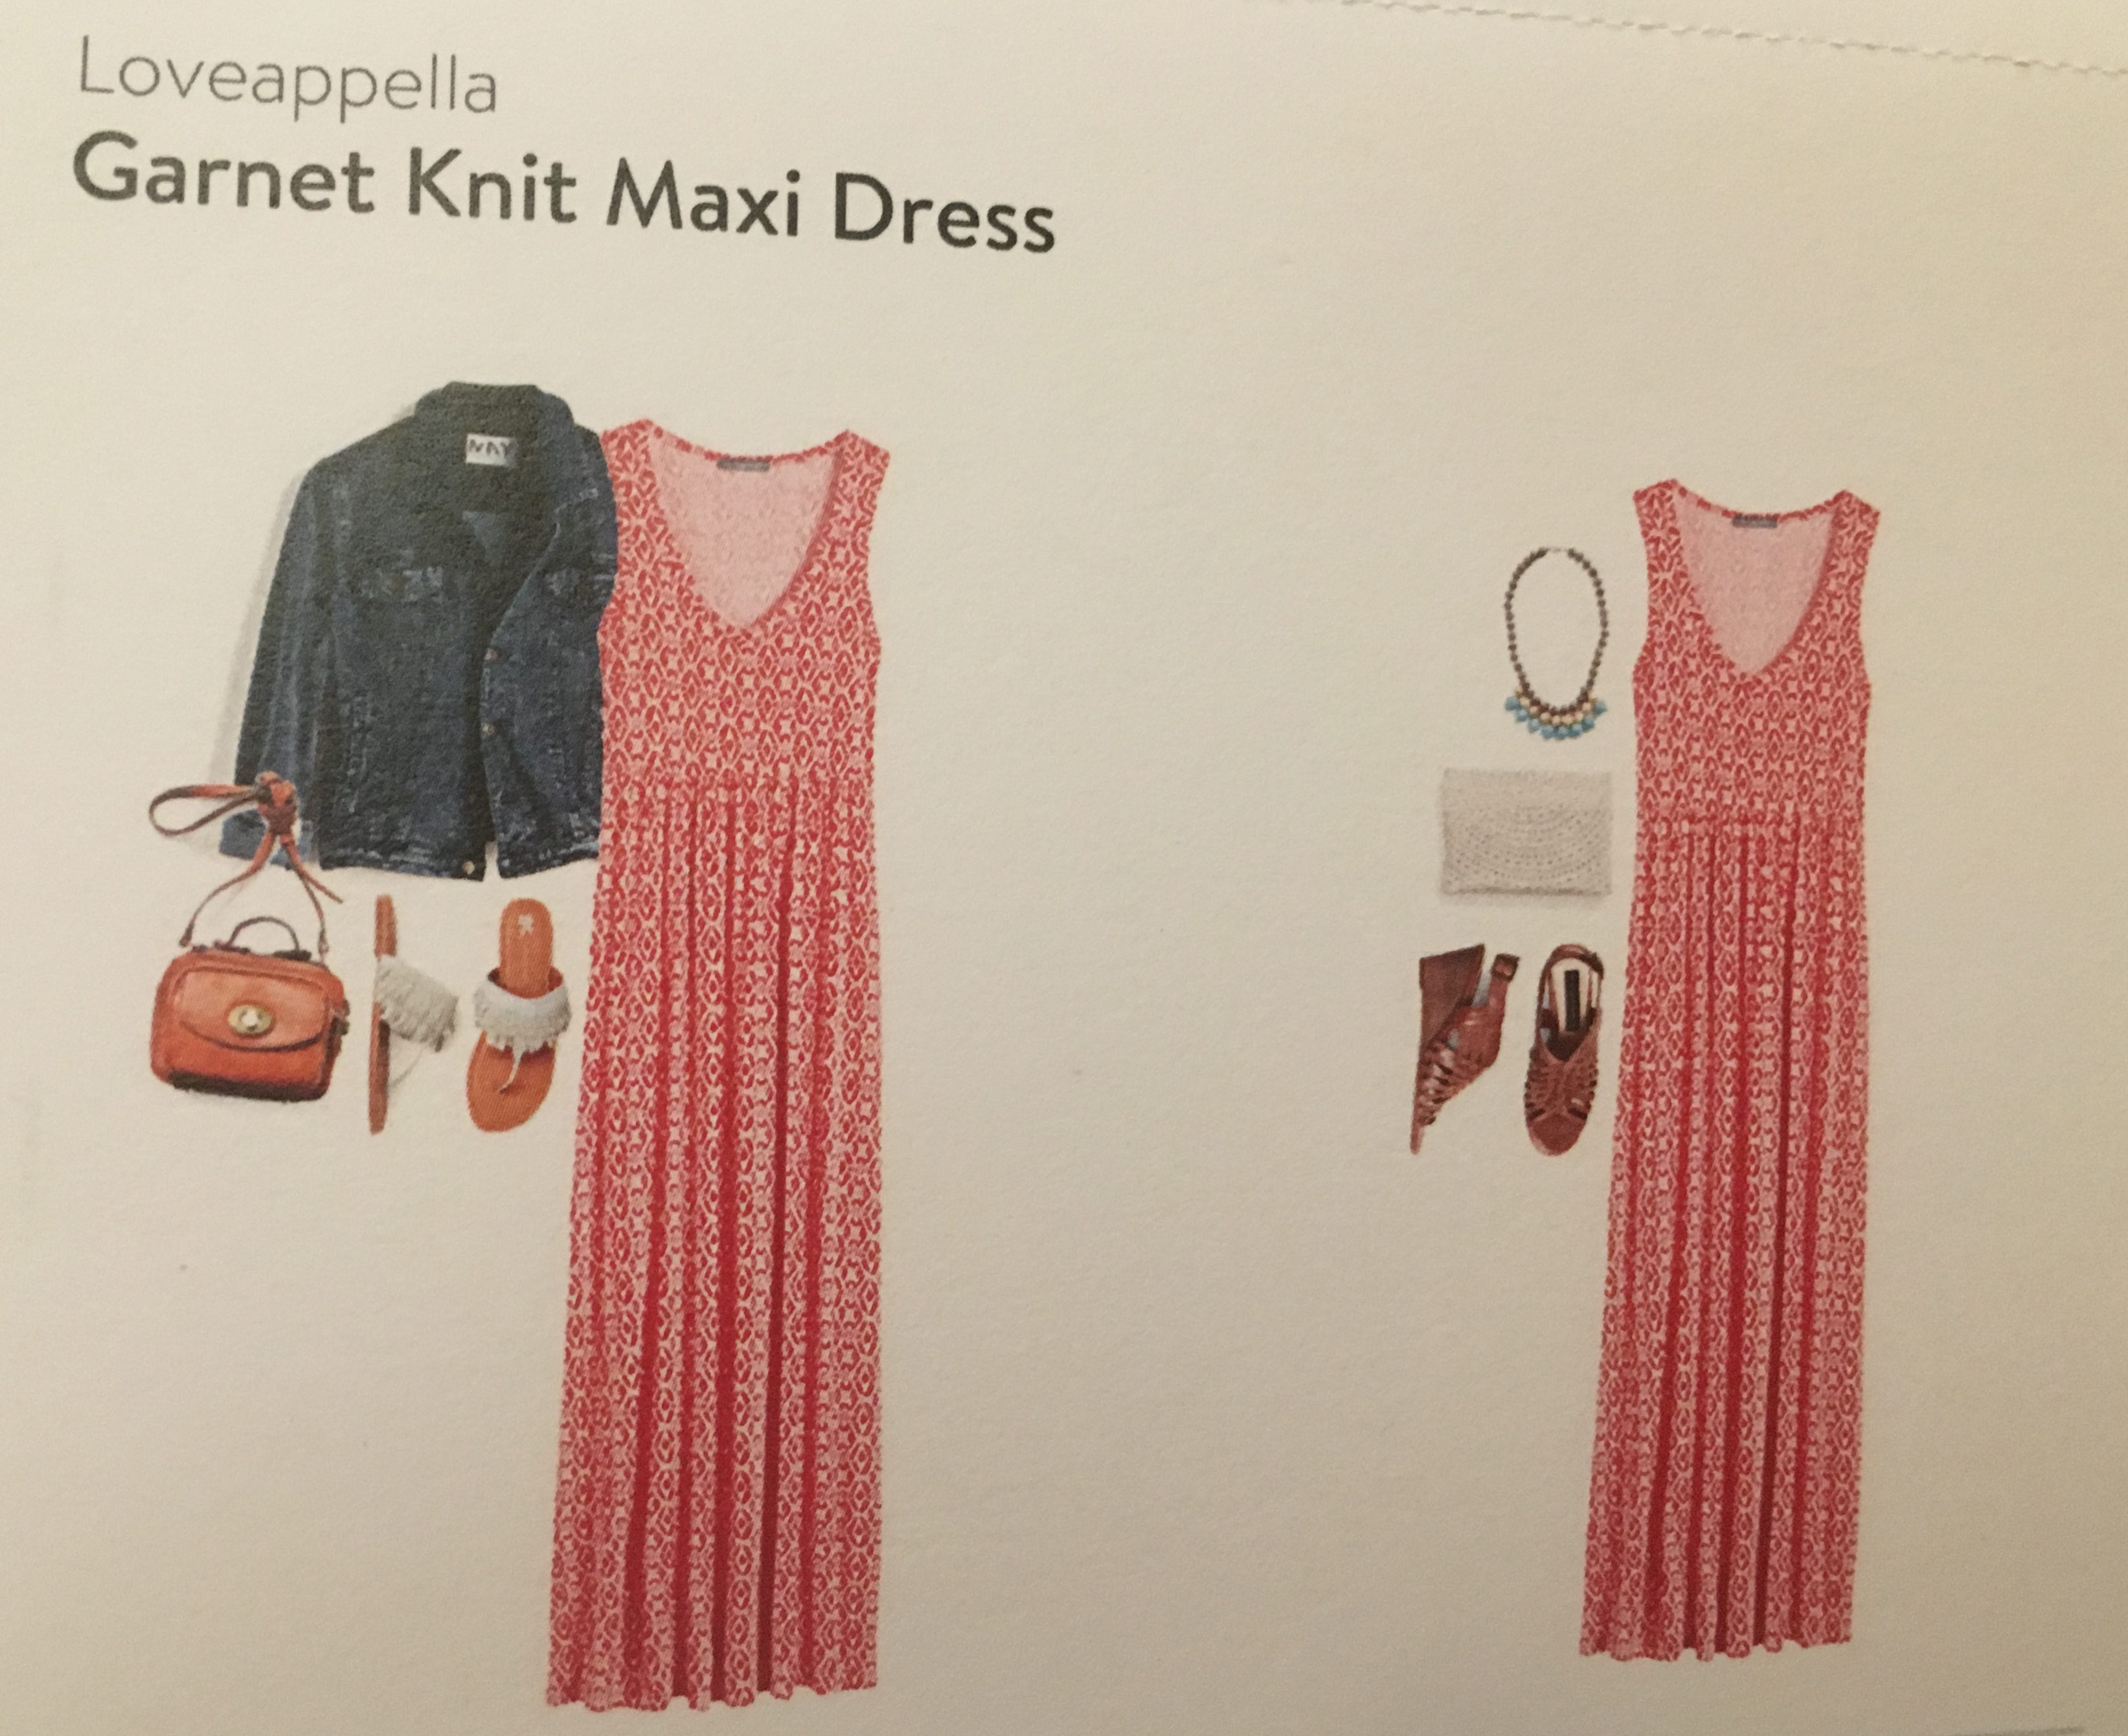 Loveappella Garnet Knit Maxi Dress Suggestions